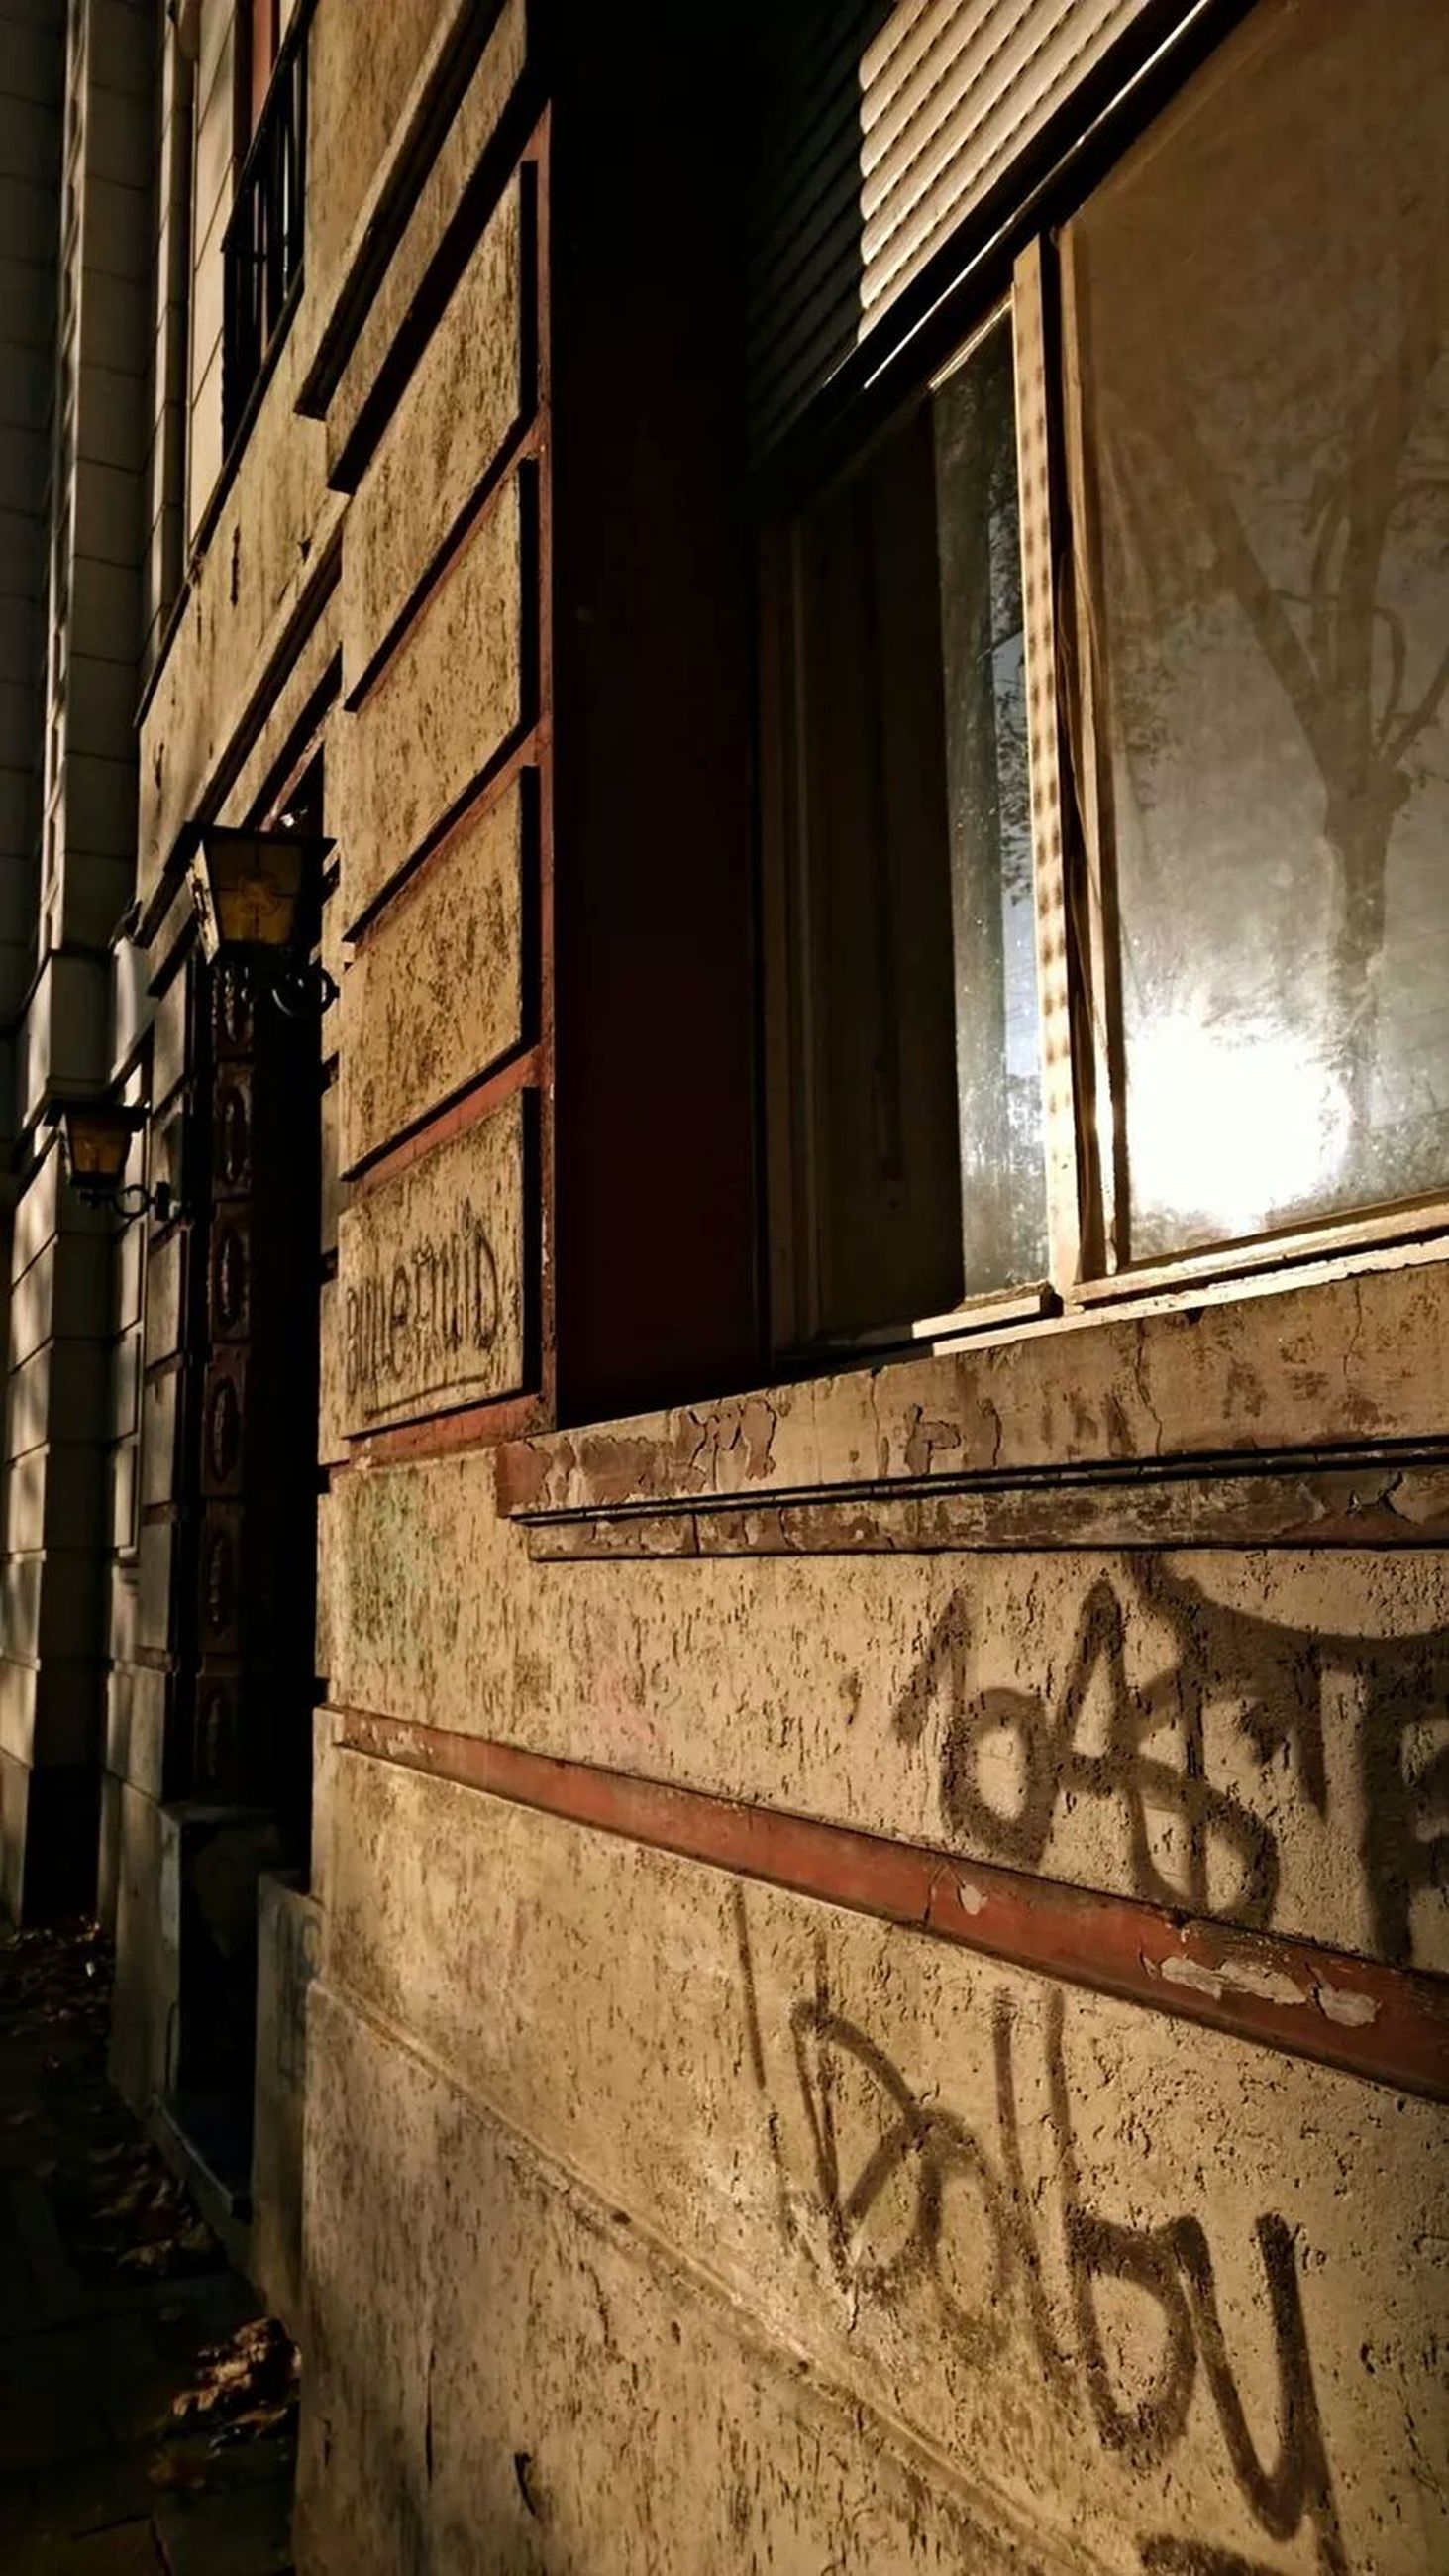 architecture, built structure, building exterior, window, old, building, abandoned, low angle view, wall - building feature, house, damaged, graffiti, no people, obsolete, day, door, weathered, residential structure, brick wall, sunlight